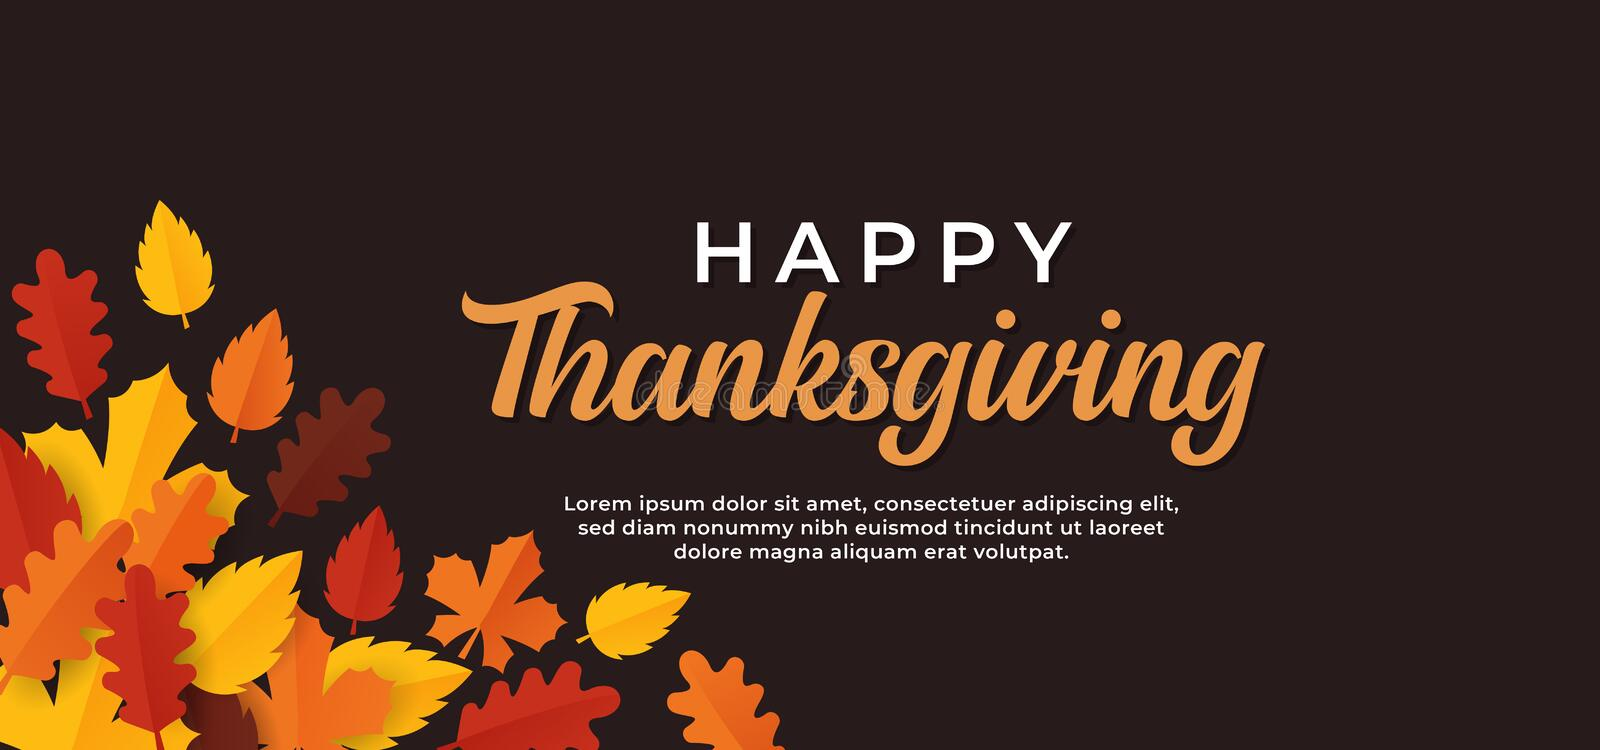 Happy thanksgiving day text minimal background with dry fall leaves vector illustration. Eps 10 vector illustration